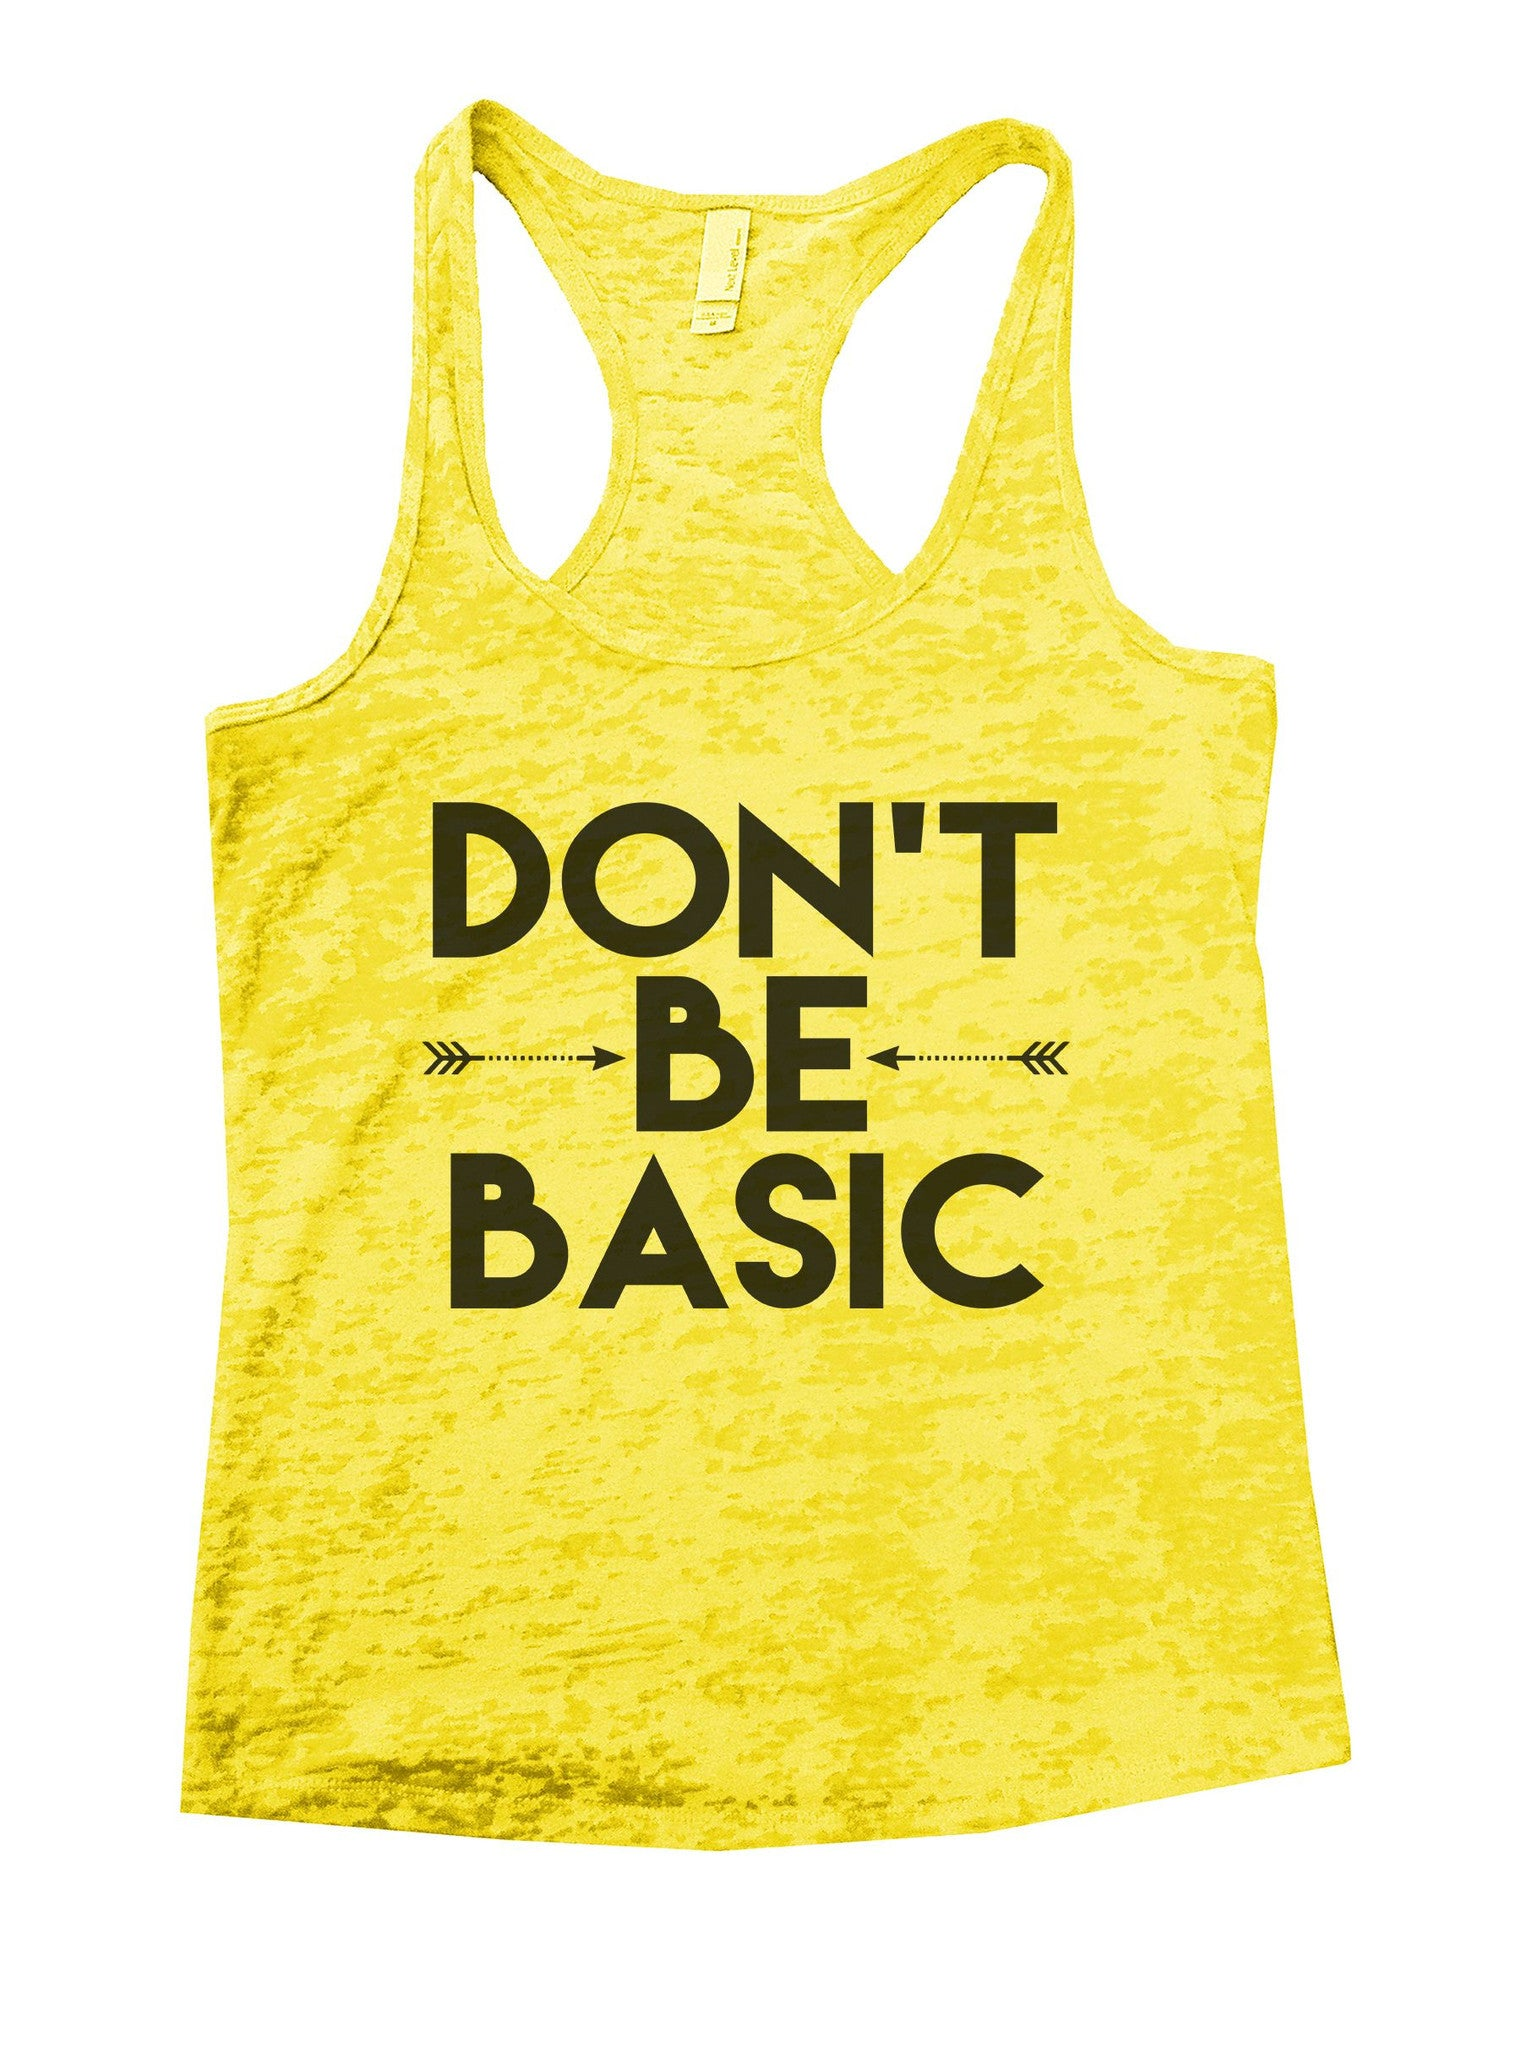 Don't Be Basic Burnout Tank Top By BurnoutTankTops.com - 920 - Funny Shirts Tank Tops Burnouts and Triblends  - 6